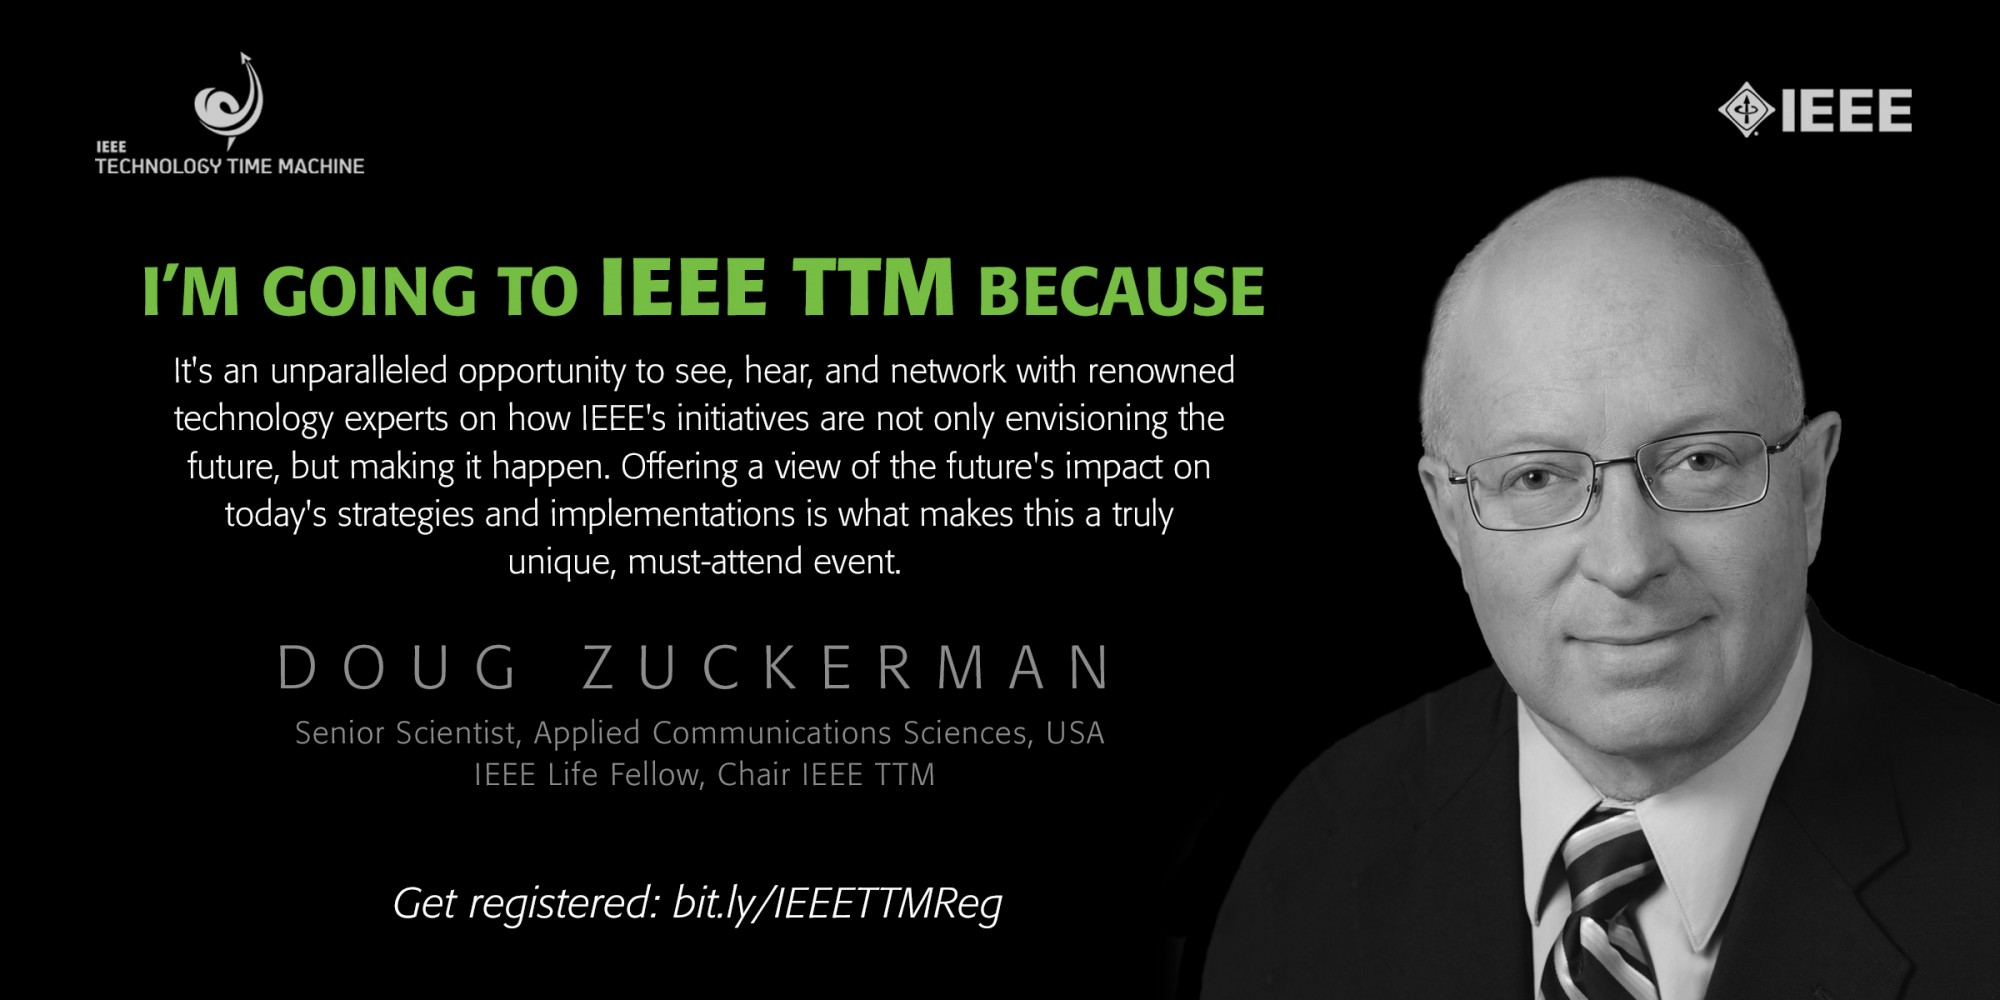 IEEE Doug Zuckerman